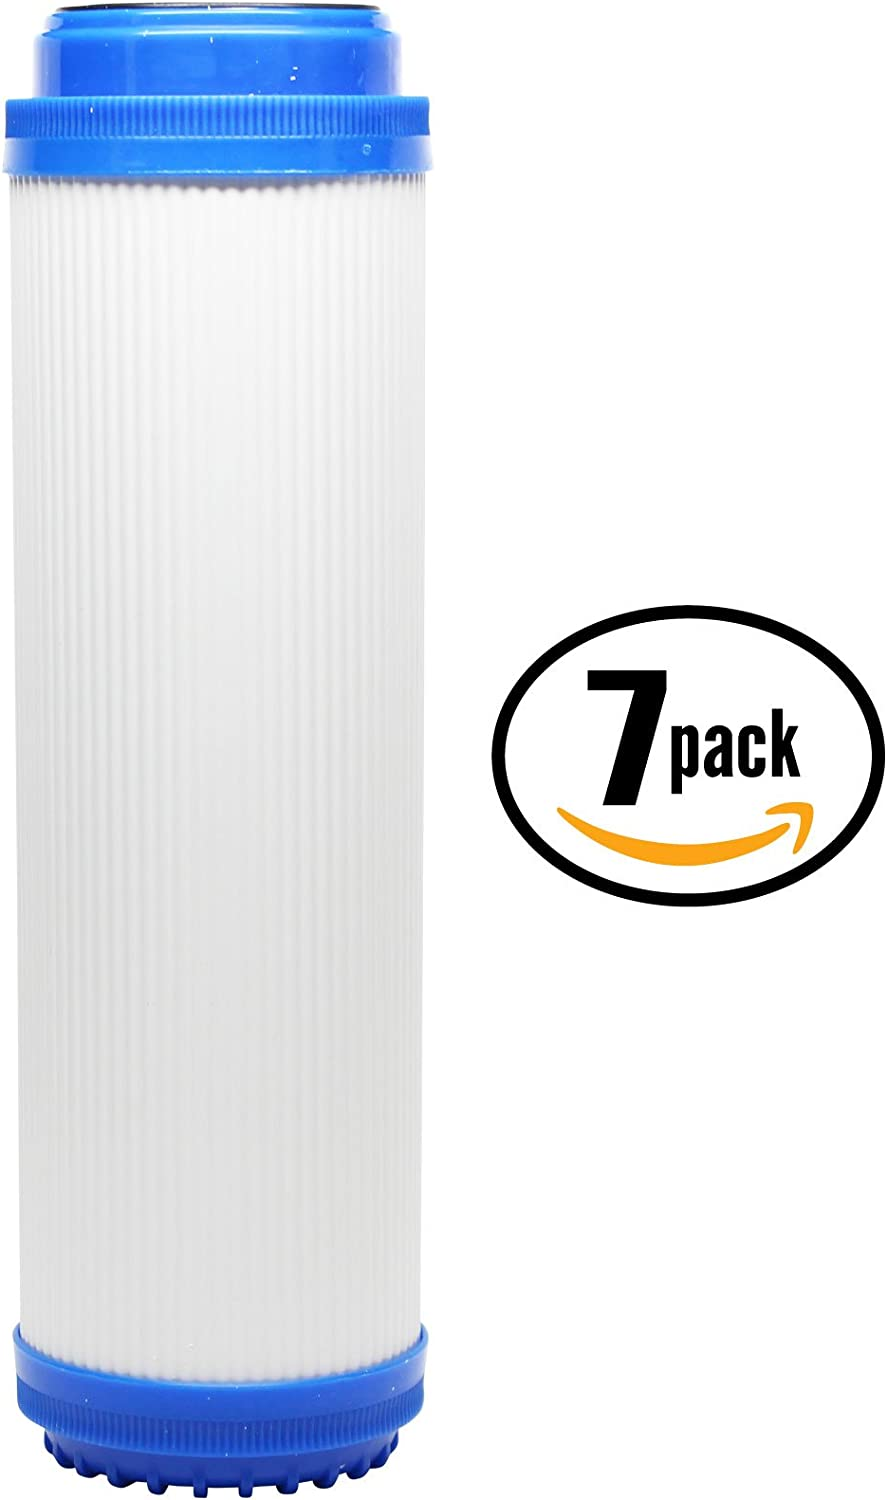 7-Pack Replacement for H2O Distributors H2O-RUS-300 Granular Activated Carbon Filter Universal 10-inch Cartridge Compatible with H2O Distributors H2O RUS-300 Triple Under Sink Filter